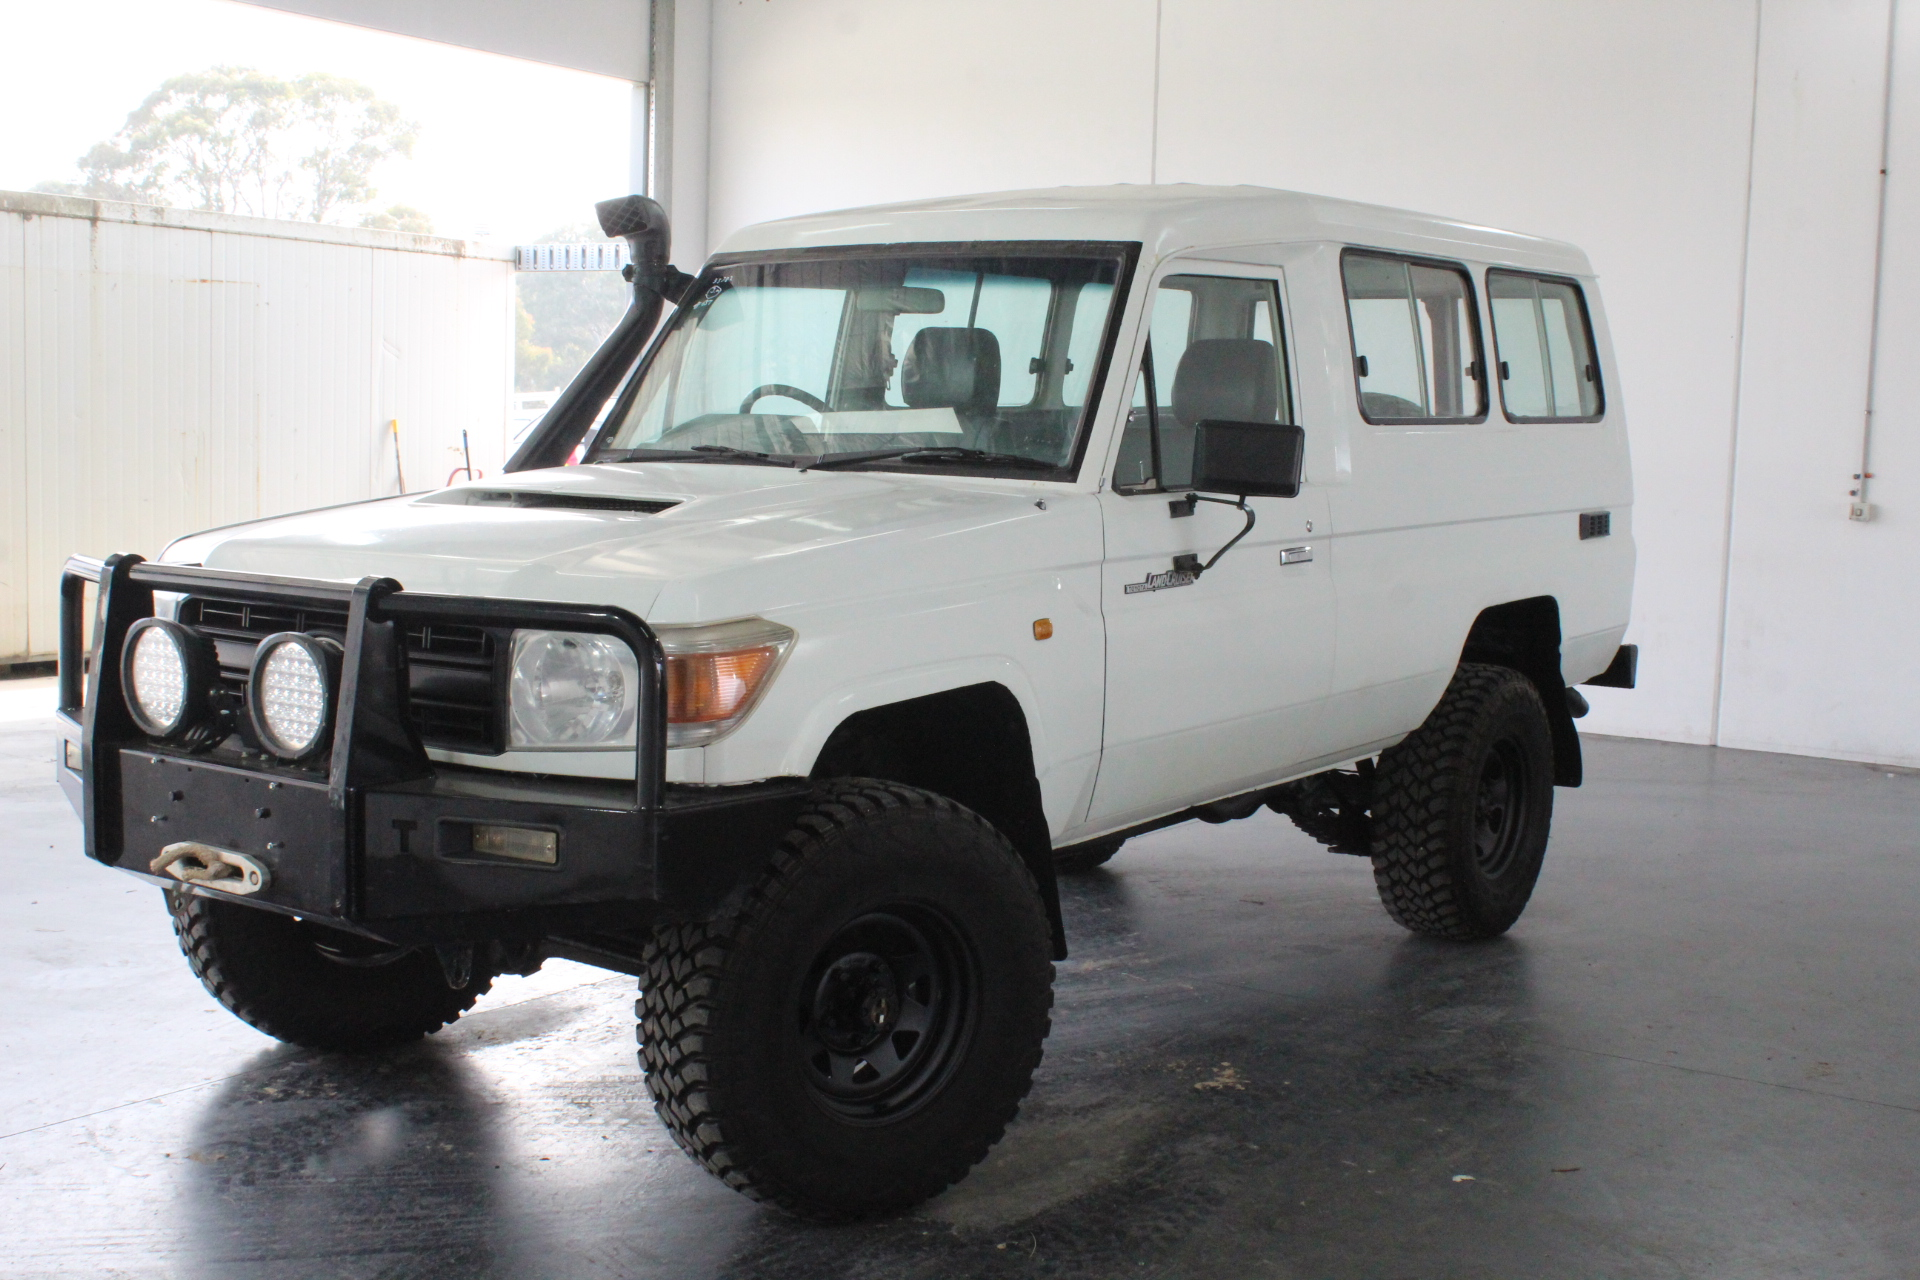 2007 Toyota Landcruiser Workmate (4x4) VDJ78R Turbo Diesel Manual 11 Seats